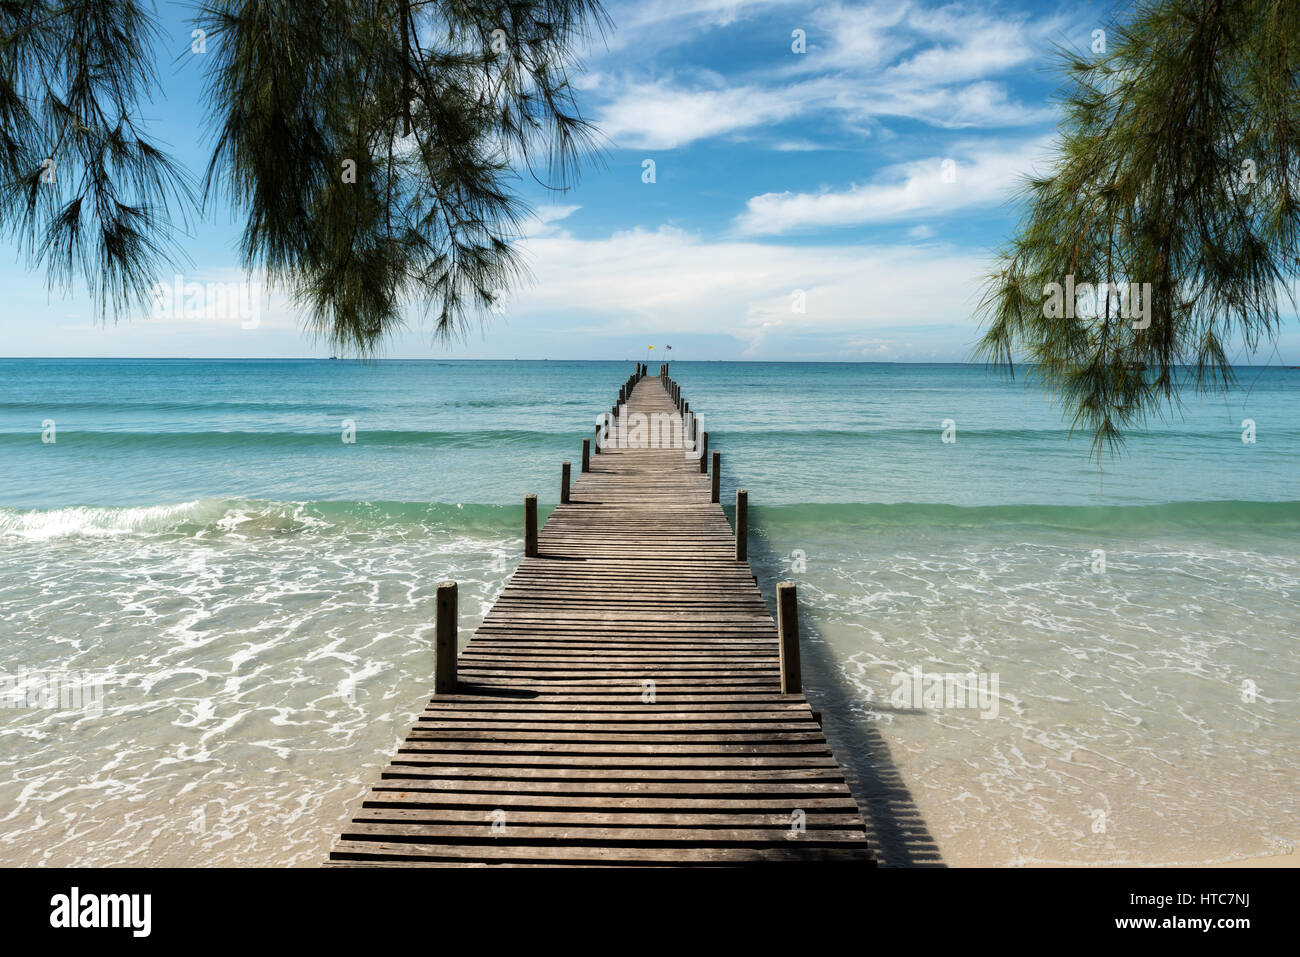 Wooden pier at resort in Phuket, Thailand. Summer, Travel, Vacation and Holiday concept. - Stock Image